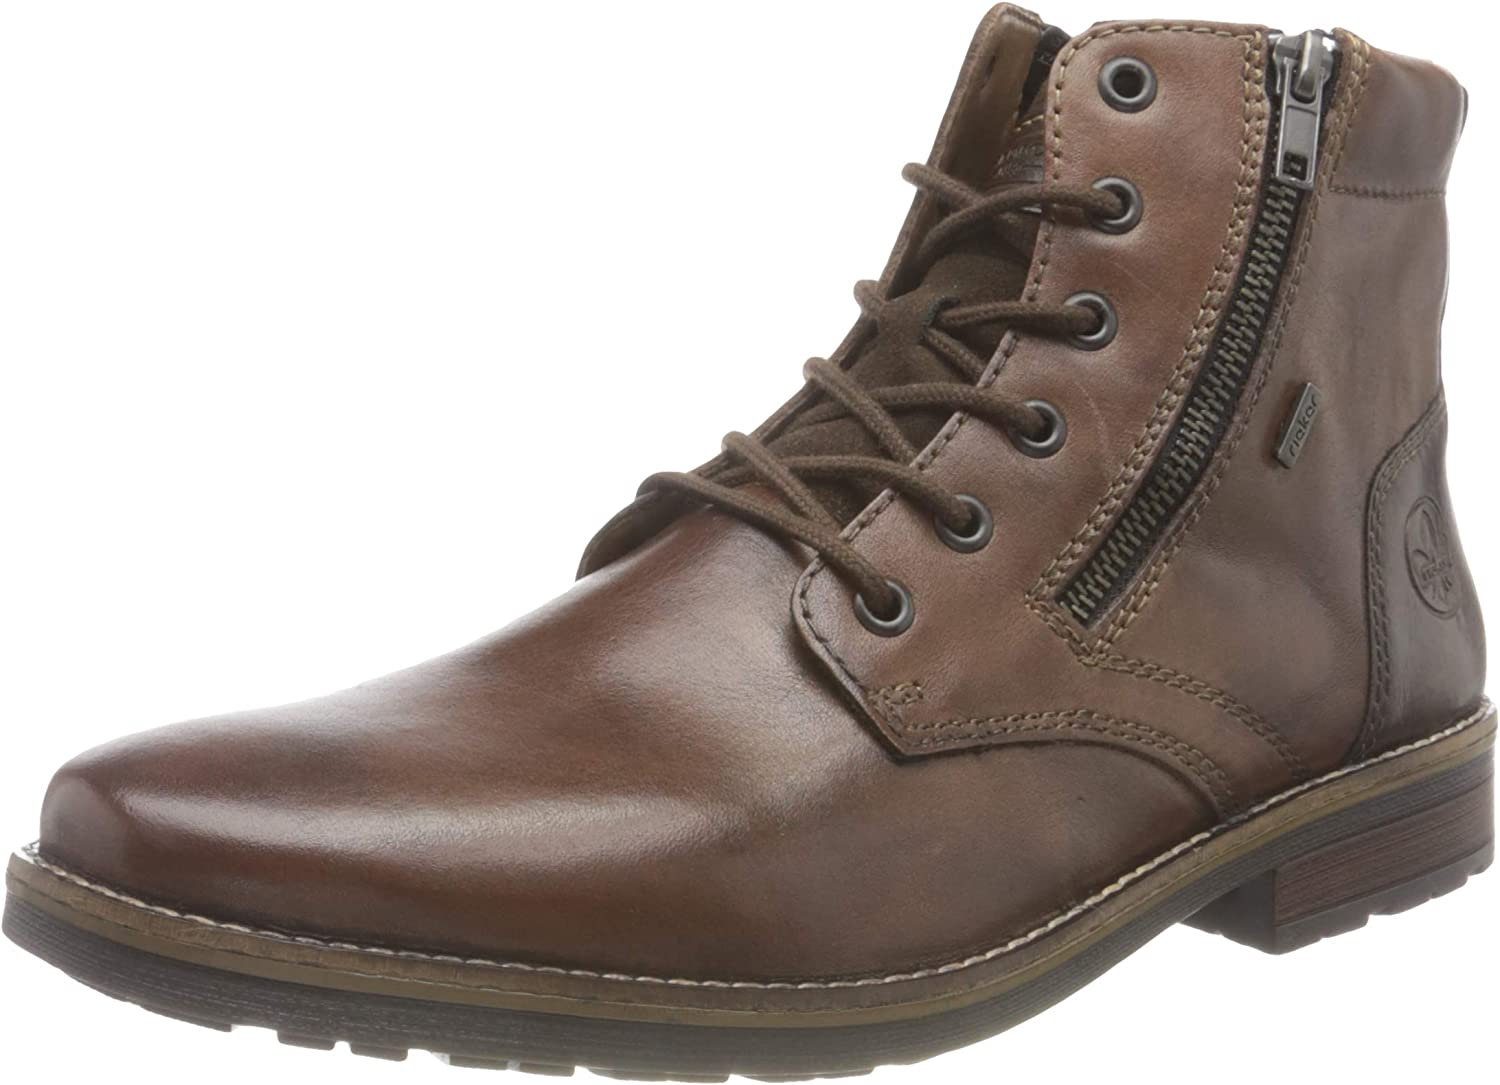 Rieker Men's Classic Boots 2021 spring and summer new Fashion Challenge the lowest price of Japan ☆